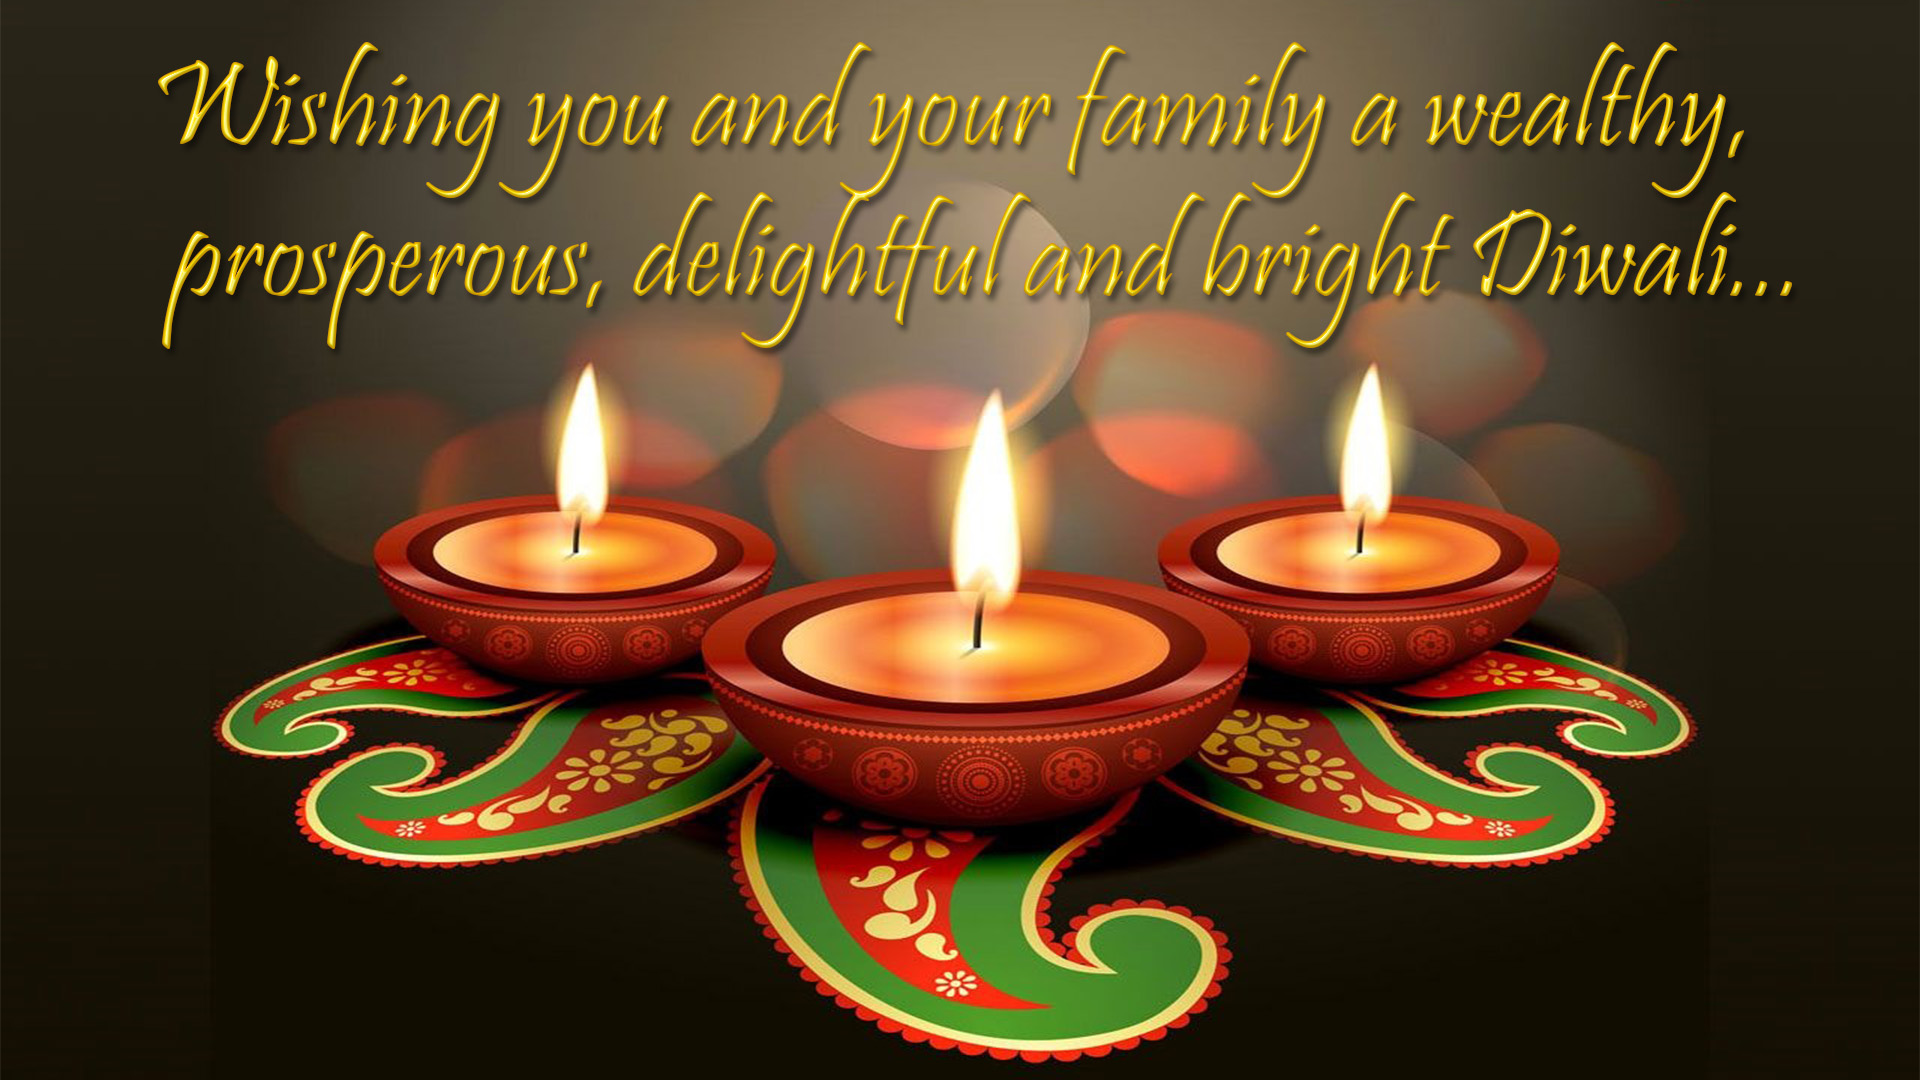 Happy diwali wishes greetings messages images deepavali wishes beautiful diwali wishes m4hsunfo